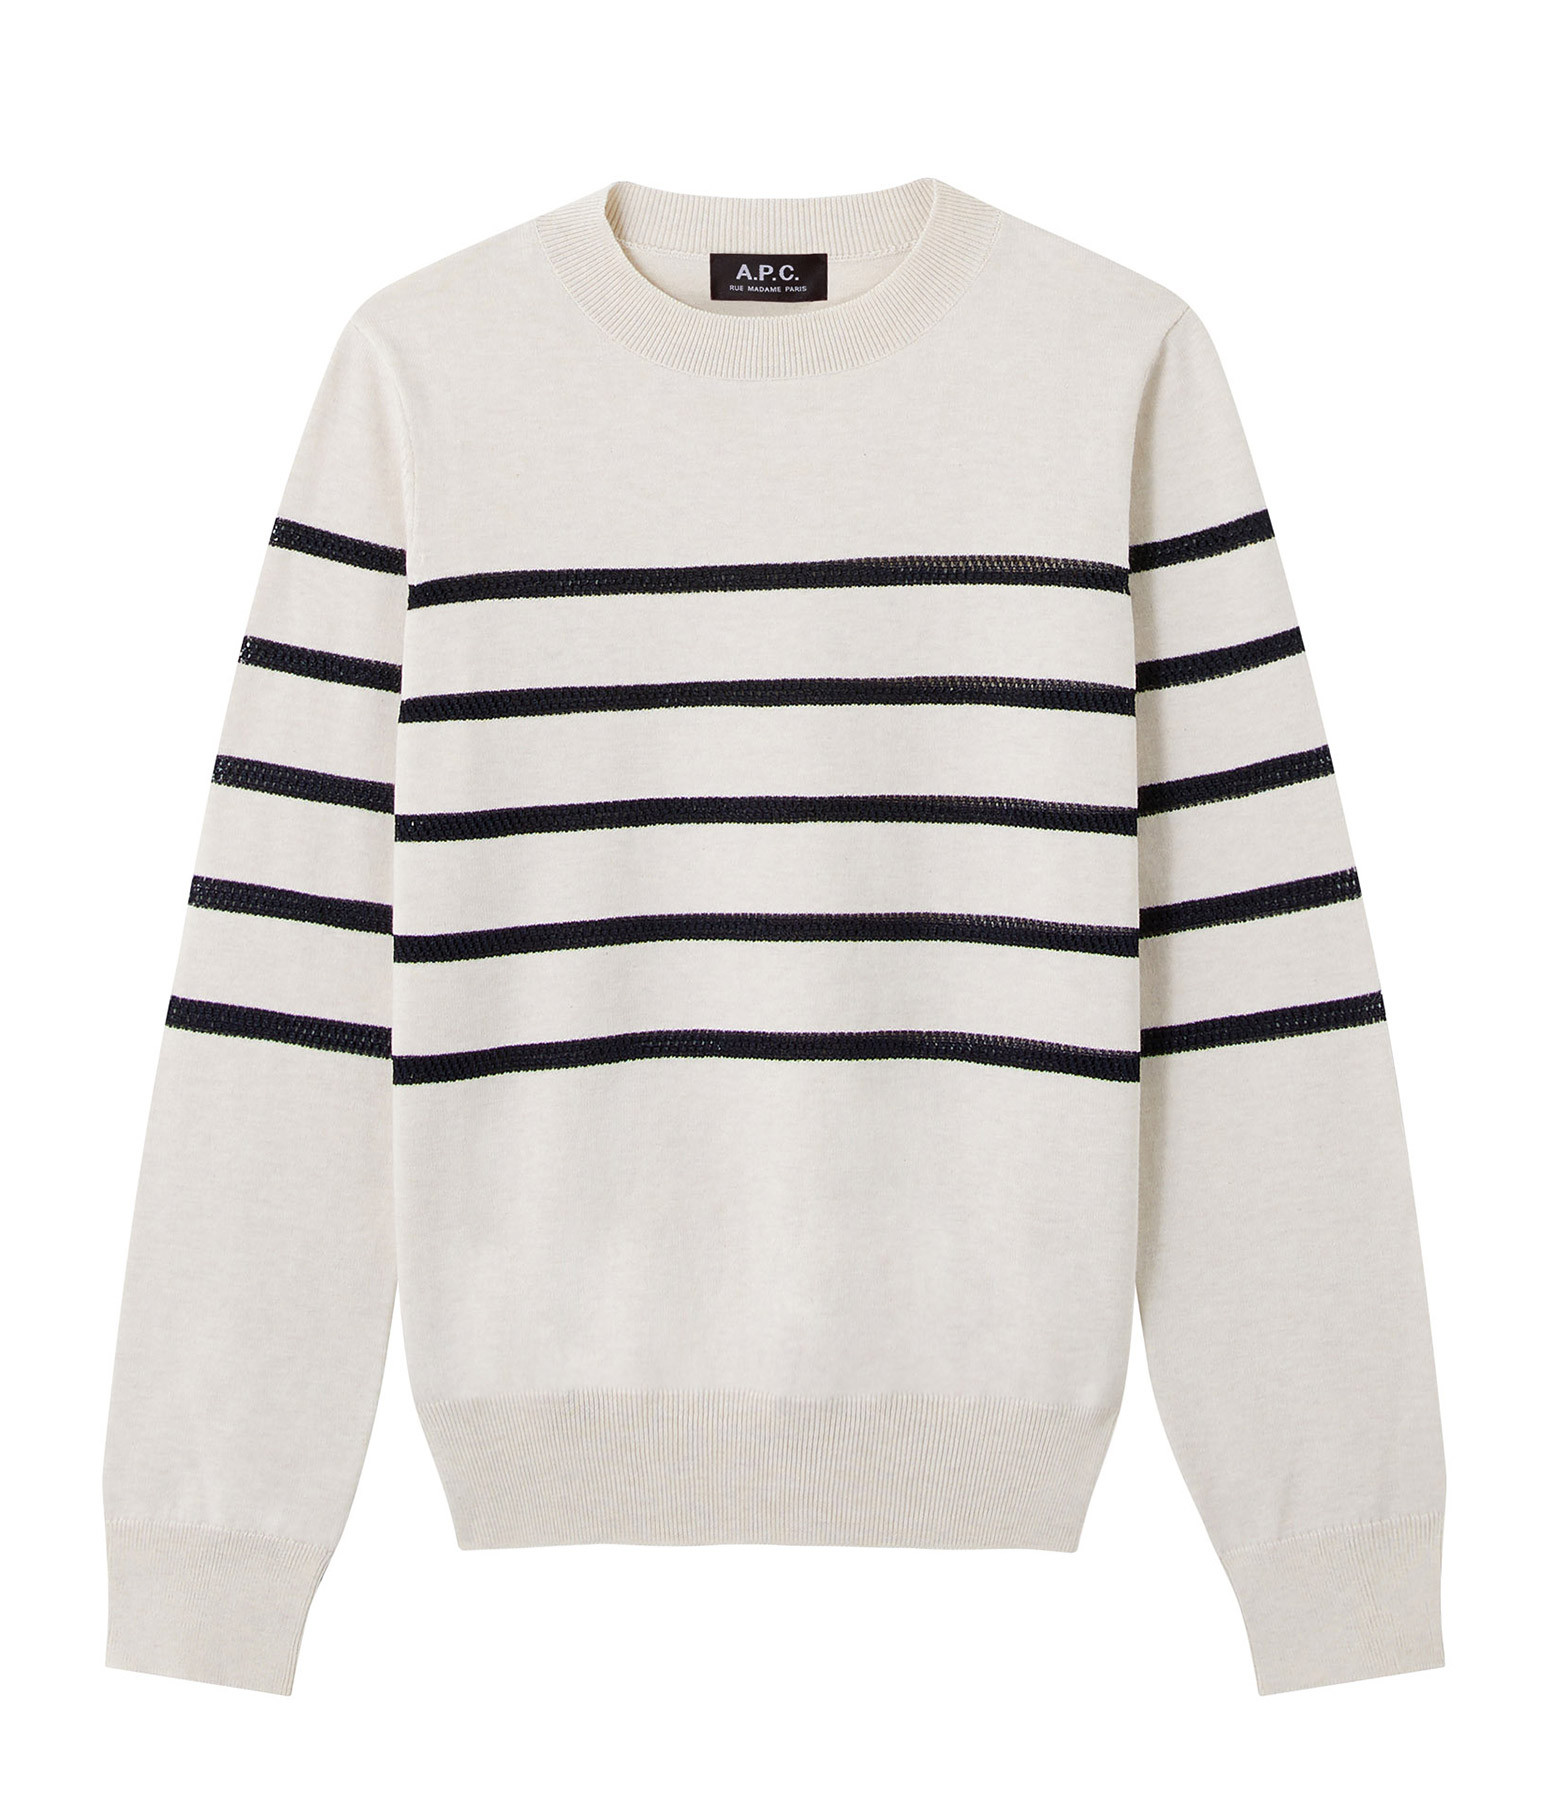 A.P.C. - Pull Cordelia Coton Rayures Craie